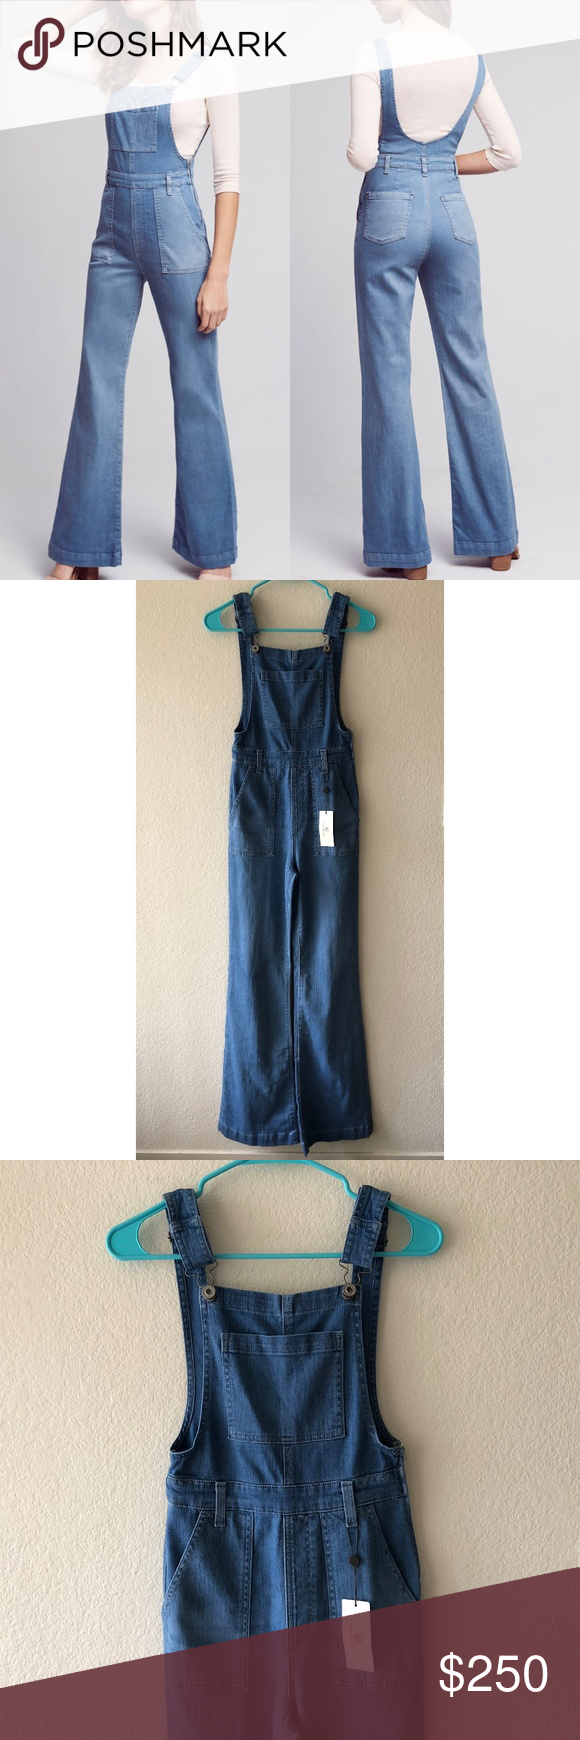 25af4a7c61f2 Denim Jumpsuit · NEW AG Adriano Goldschmied Lolita overalls flare Brand new  with tags. AG Adriano Goldschmied Lolita